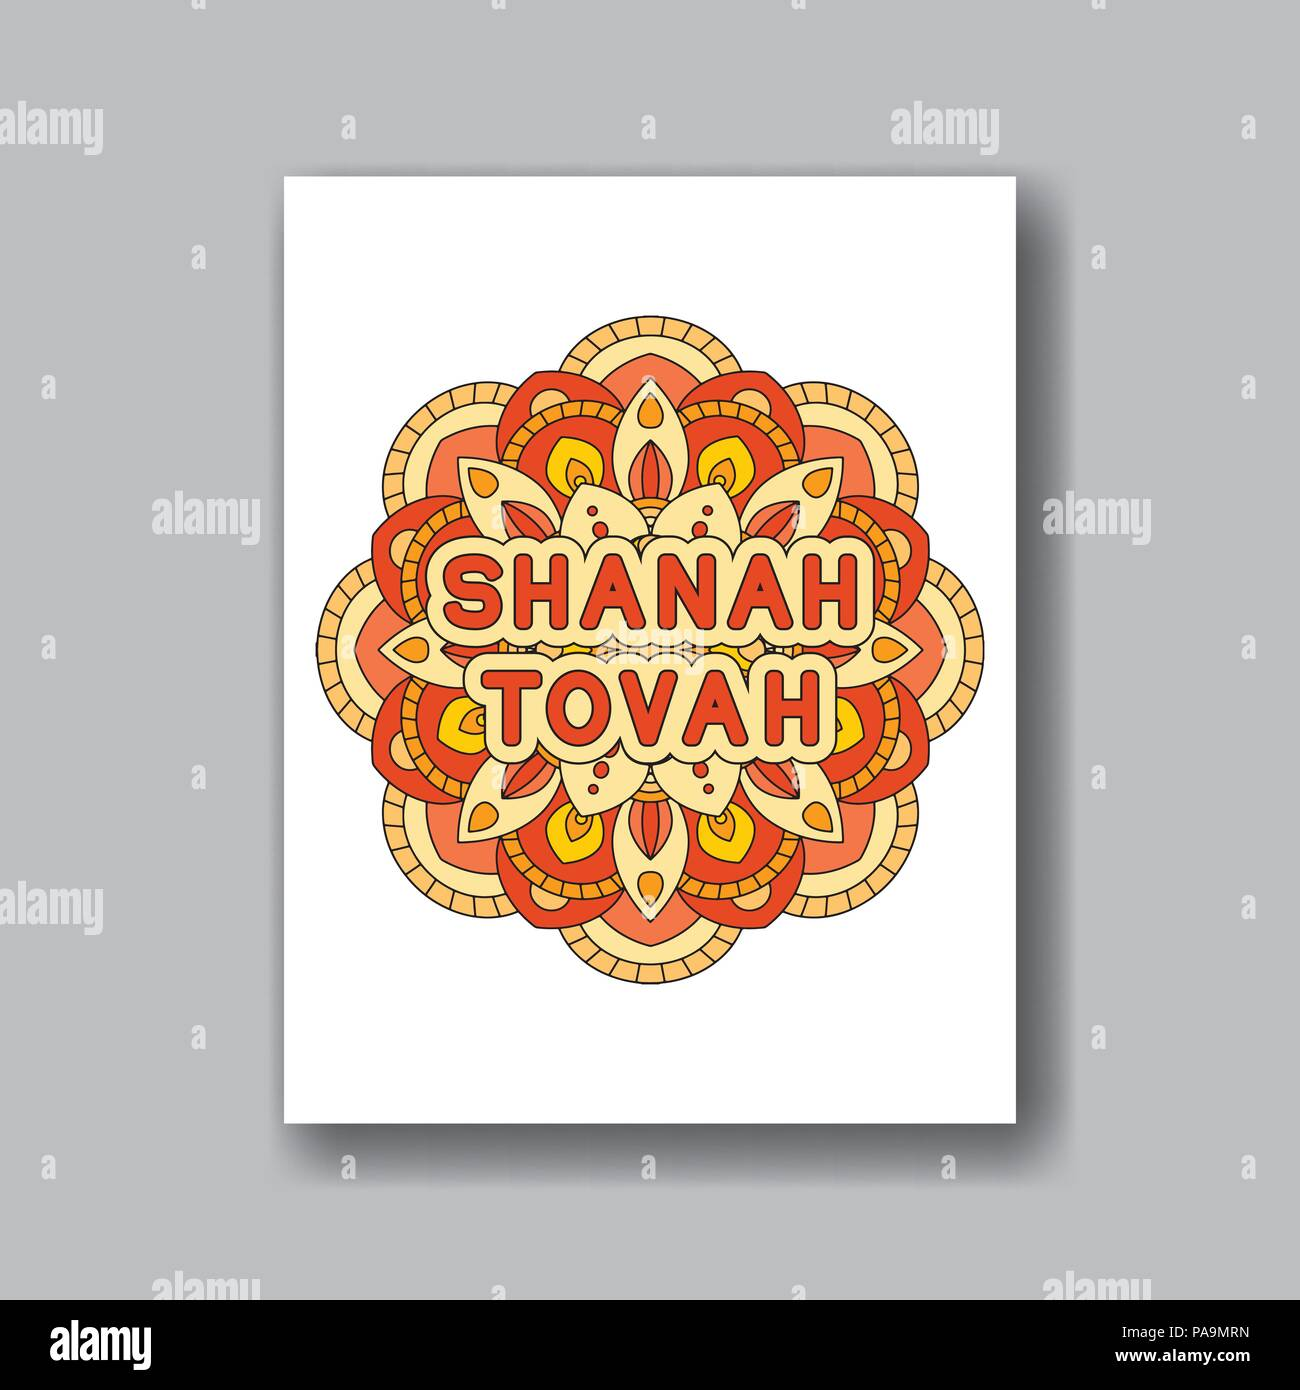 Rosh Hashanah Jewish New Year Greeting Card Design With Abstract